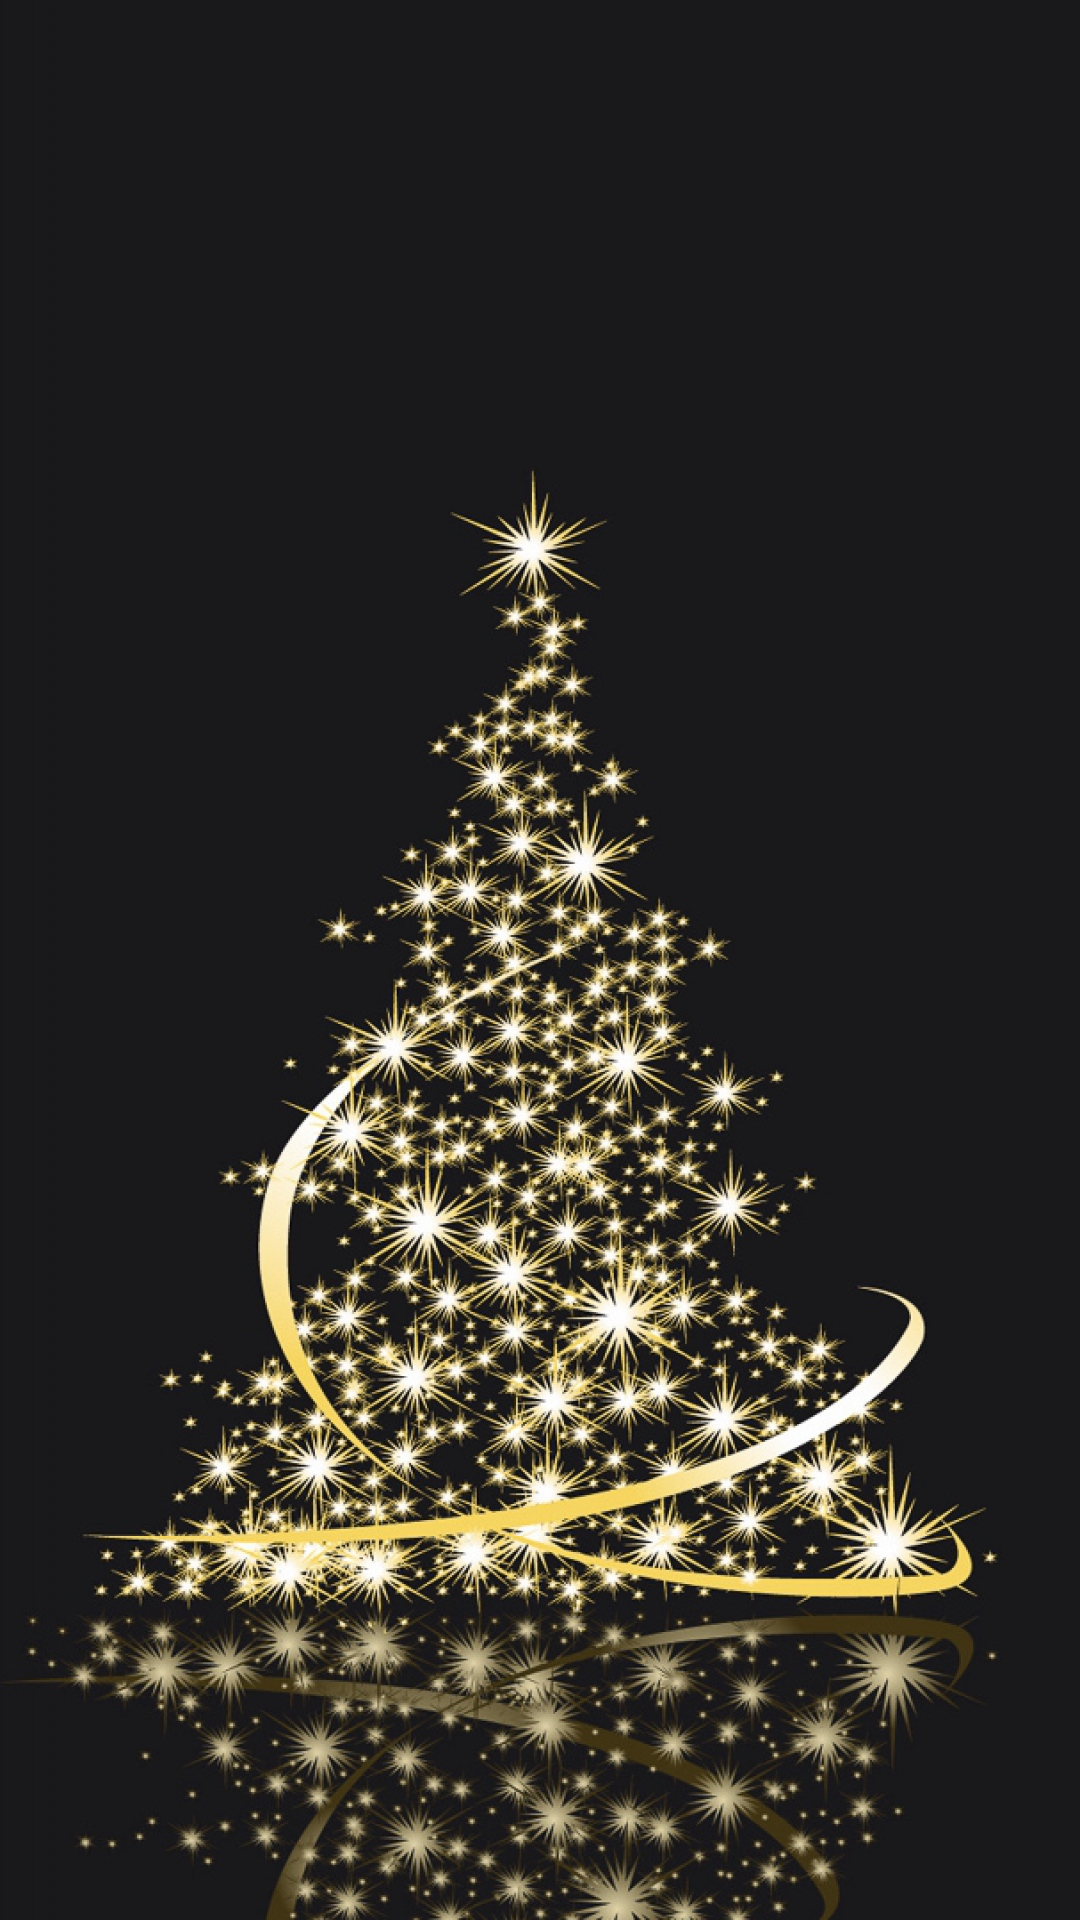 christmas christmastree lights background 1080x1920